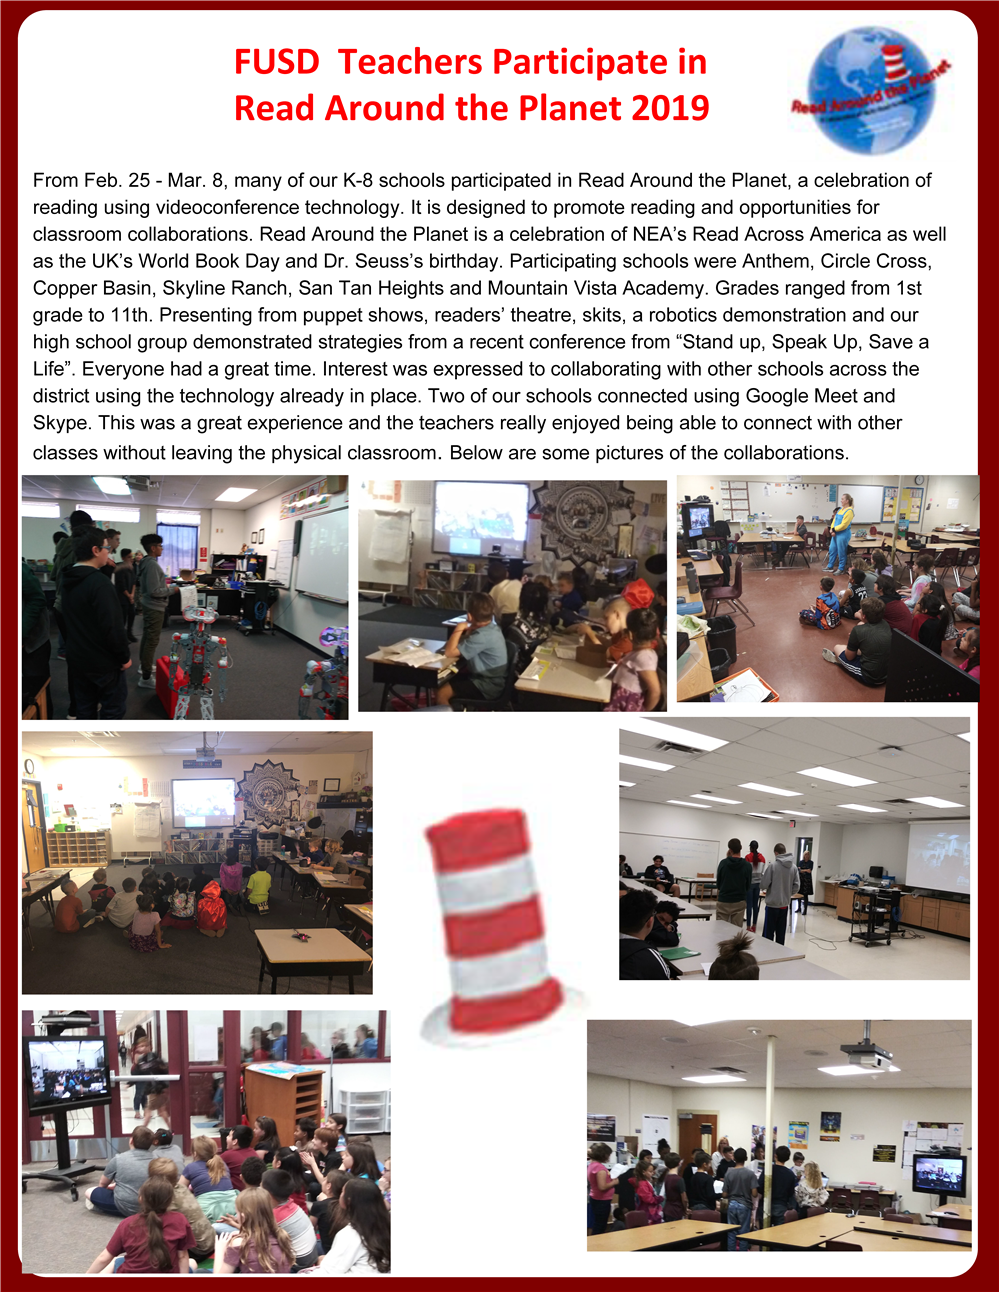 FUSD Teachers Participate in Read Across the Planet